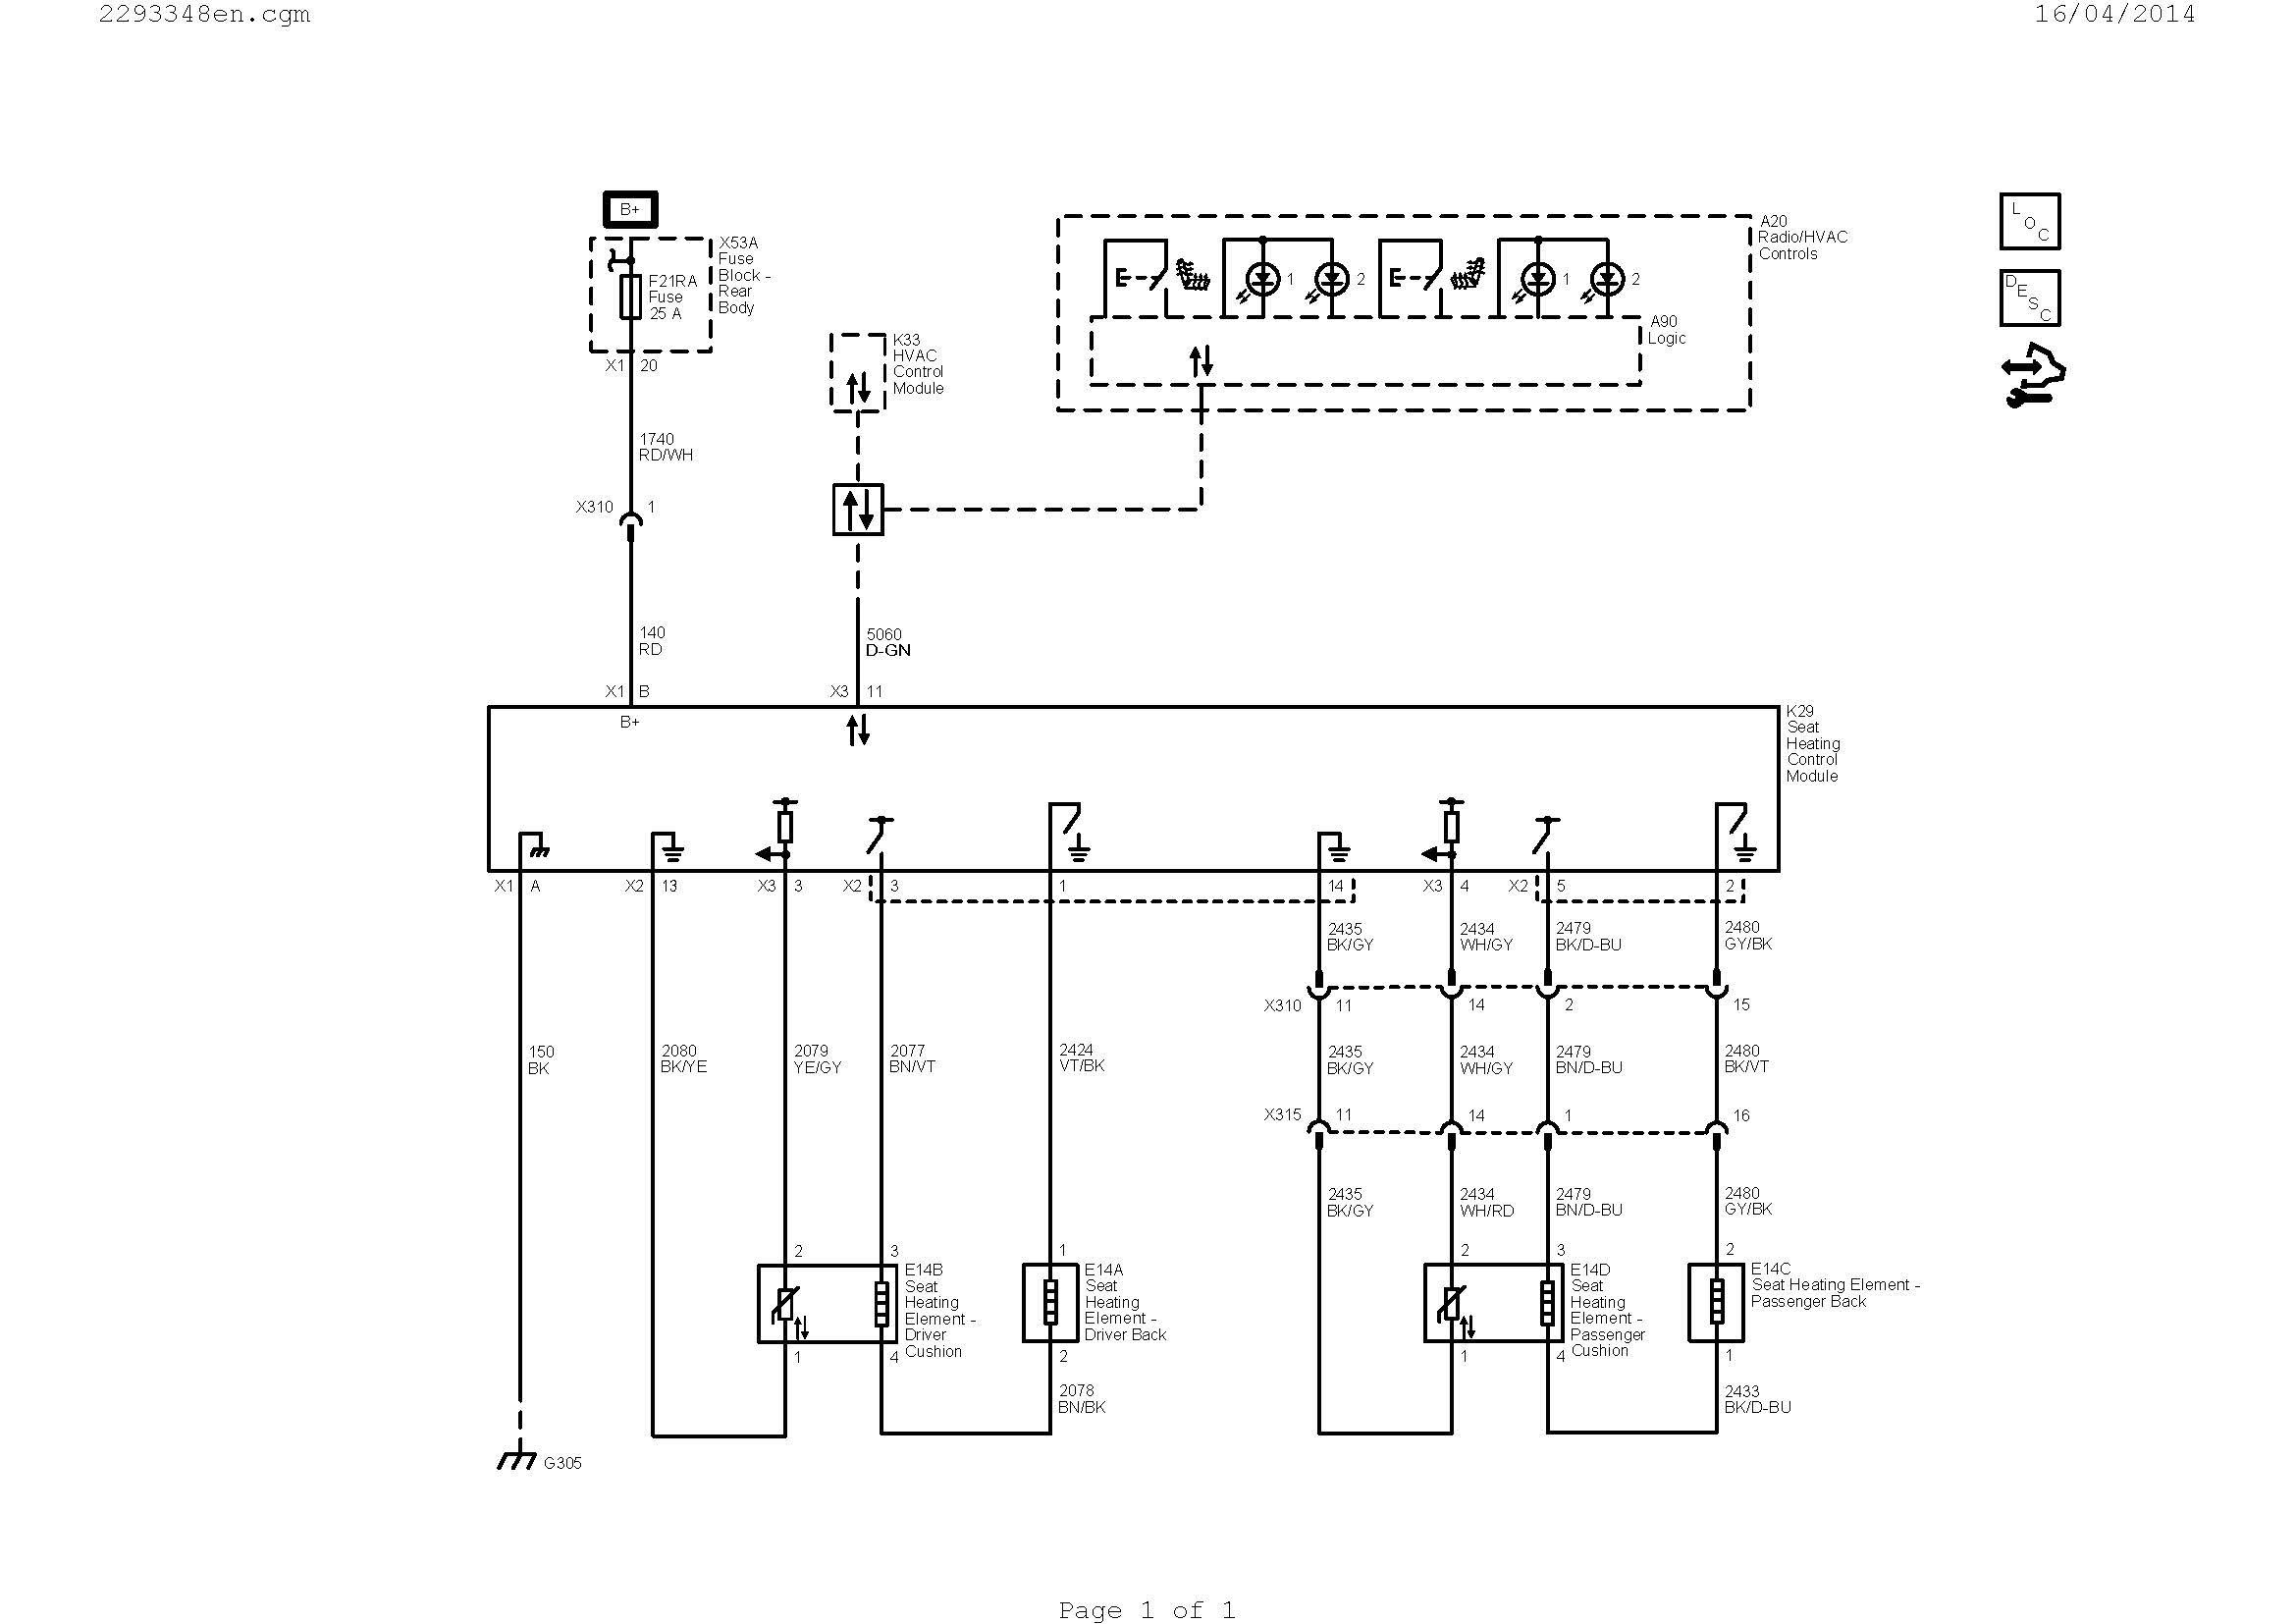 7 wire thermostat wiring diagram Collection-7 wire thermostat wiring diagram Download Wiring A Ac Thermostat Diagram New Wiring Diagram Ac 7-i